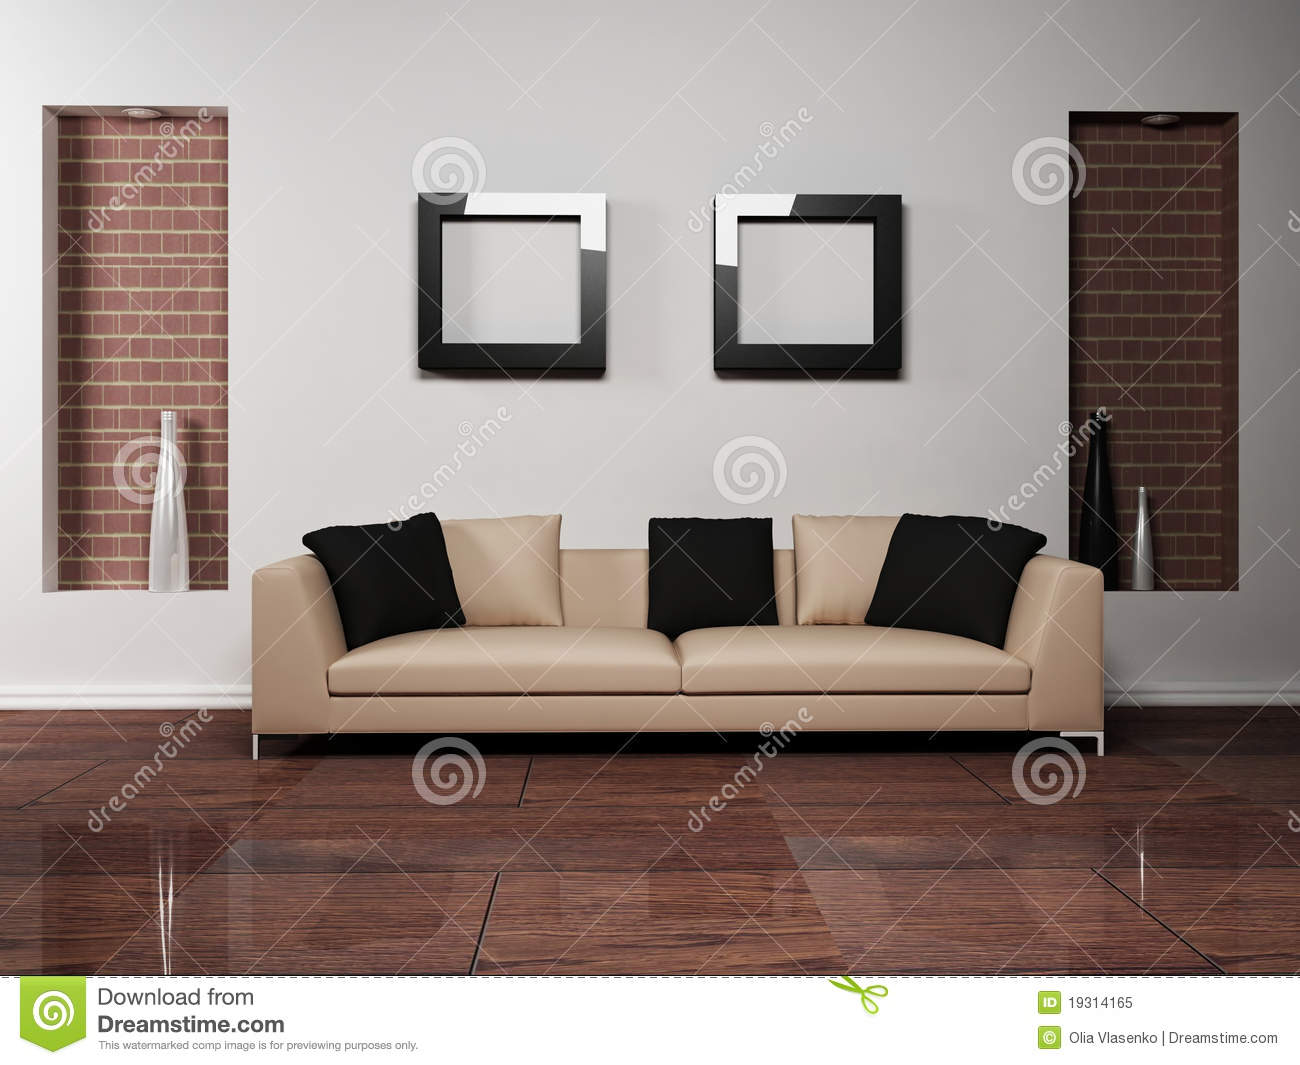 Living room design images free for New design interior living room